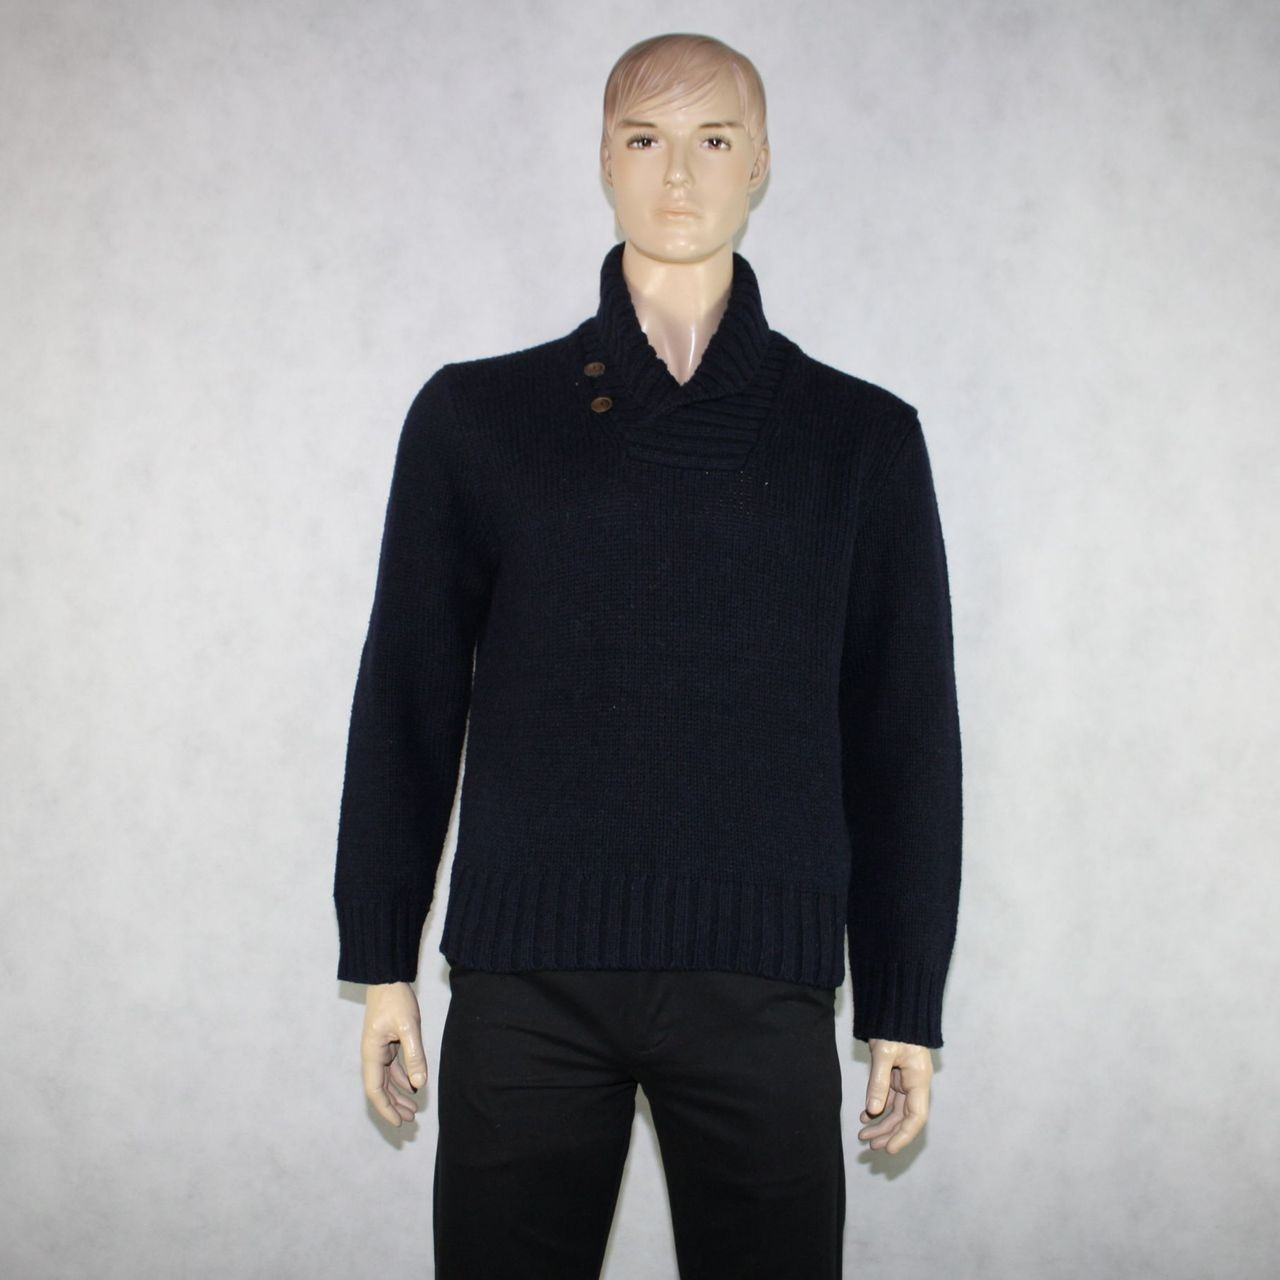 Mens Cowl Neck Sweater Her Sweater